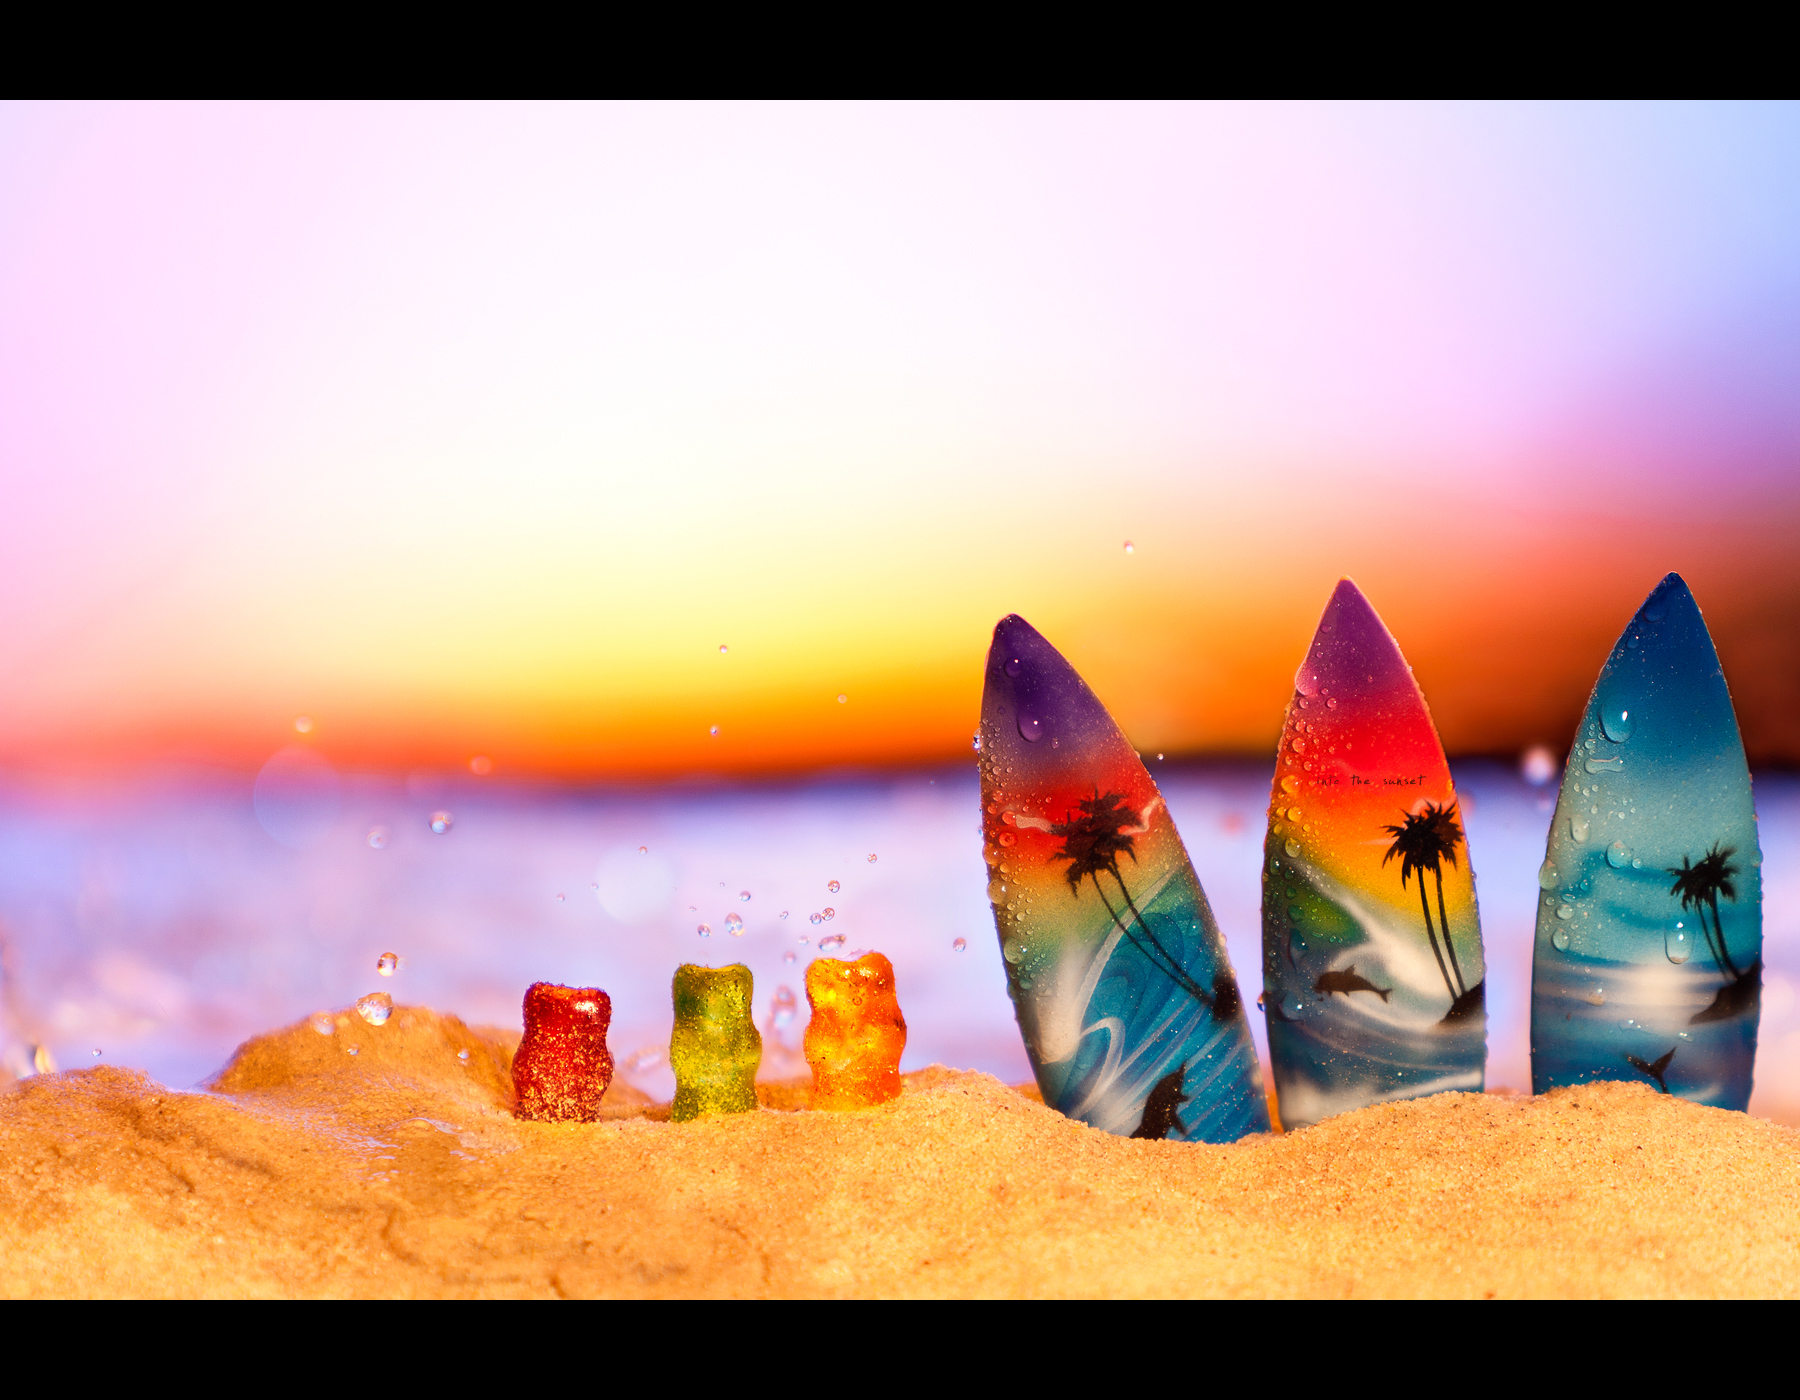 Project 365, Day 364, 364/365, Bokeh, strobist, saftbären, beach, surf, surfing, sunset, surfboards, waves, splash, water, sand, gummy bears, gummi bear, Gummibär, Bär, Bärchen, haribo, Gummibärchen, Gummibären, Canon Ef 70-200 f2.8 IS,